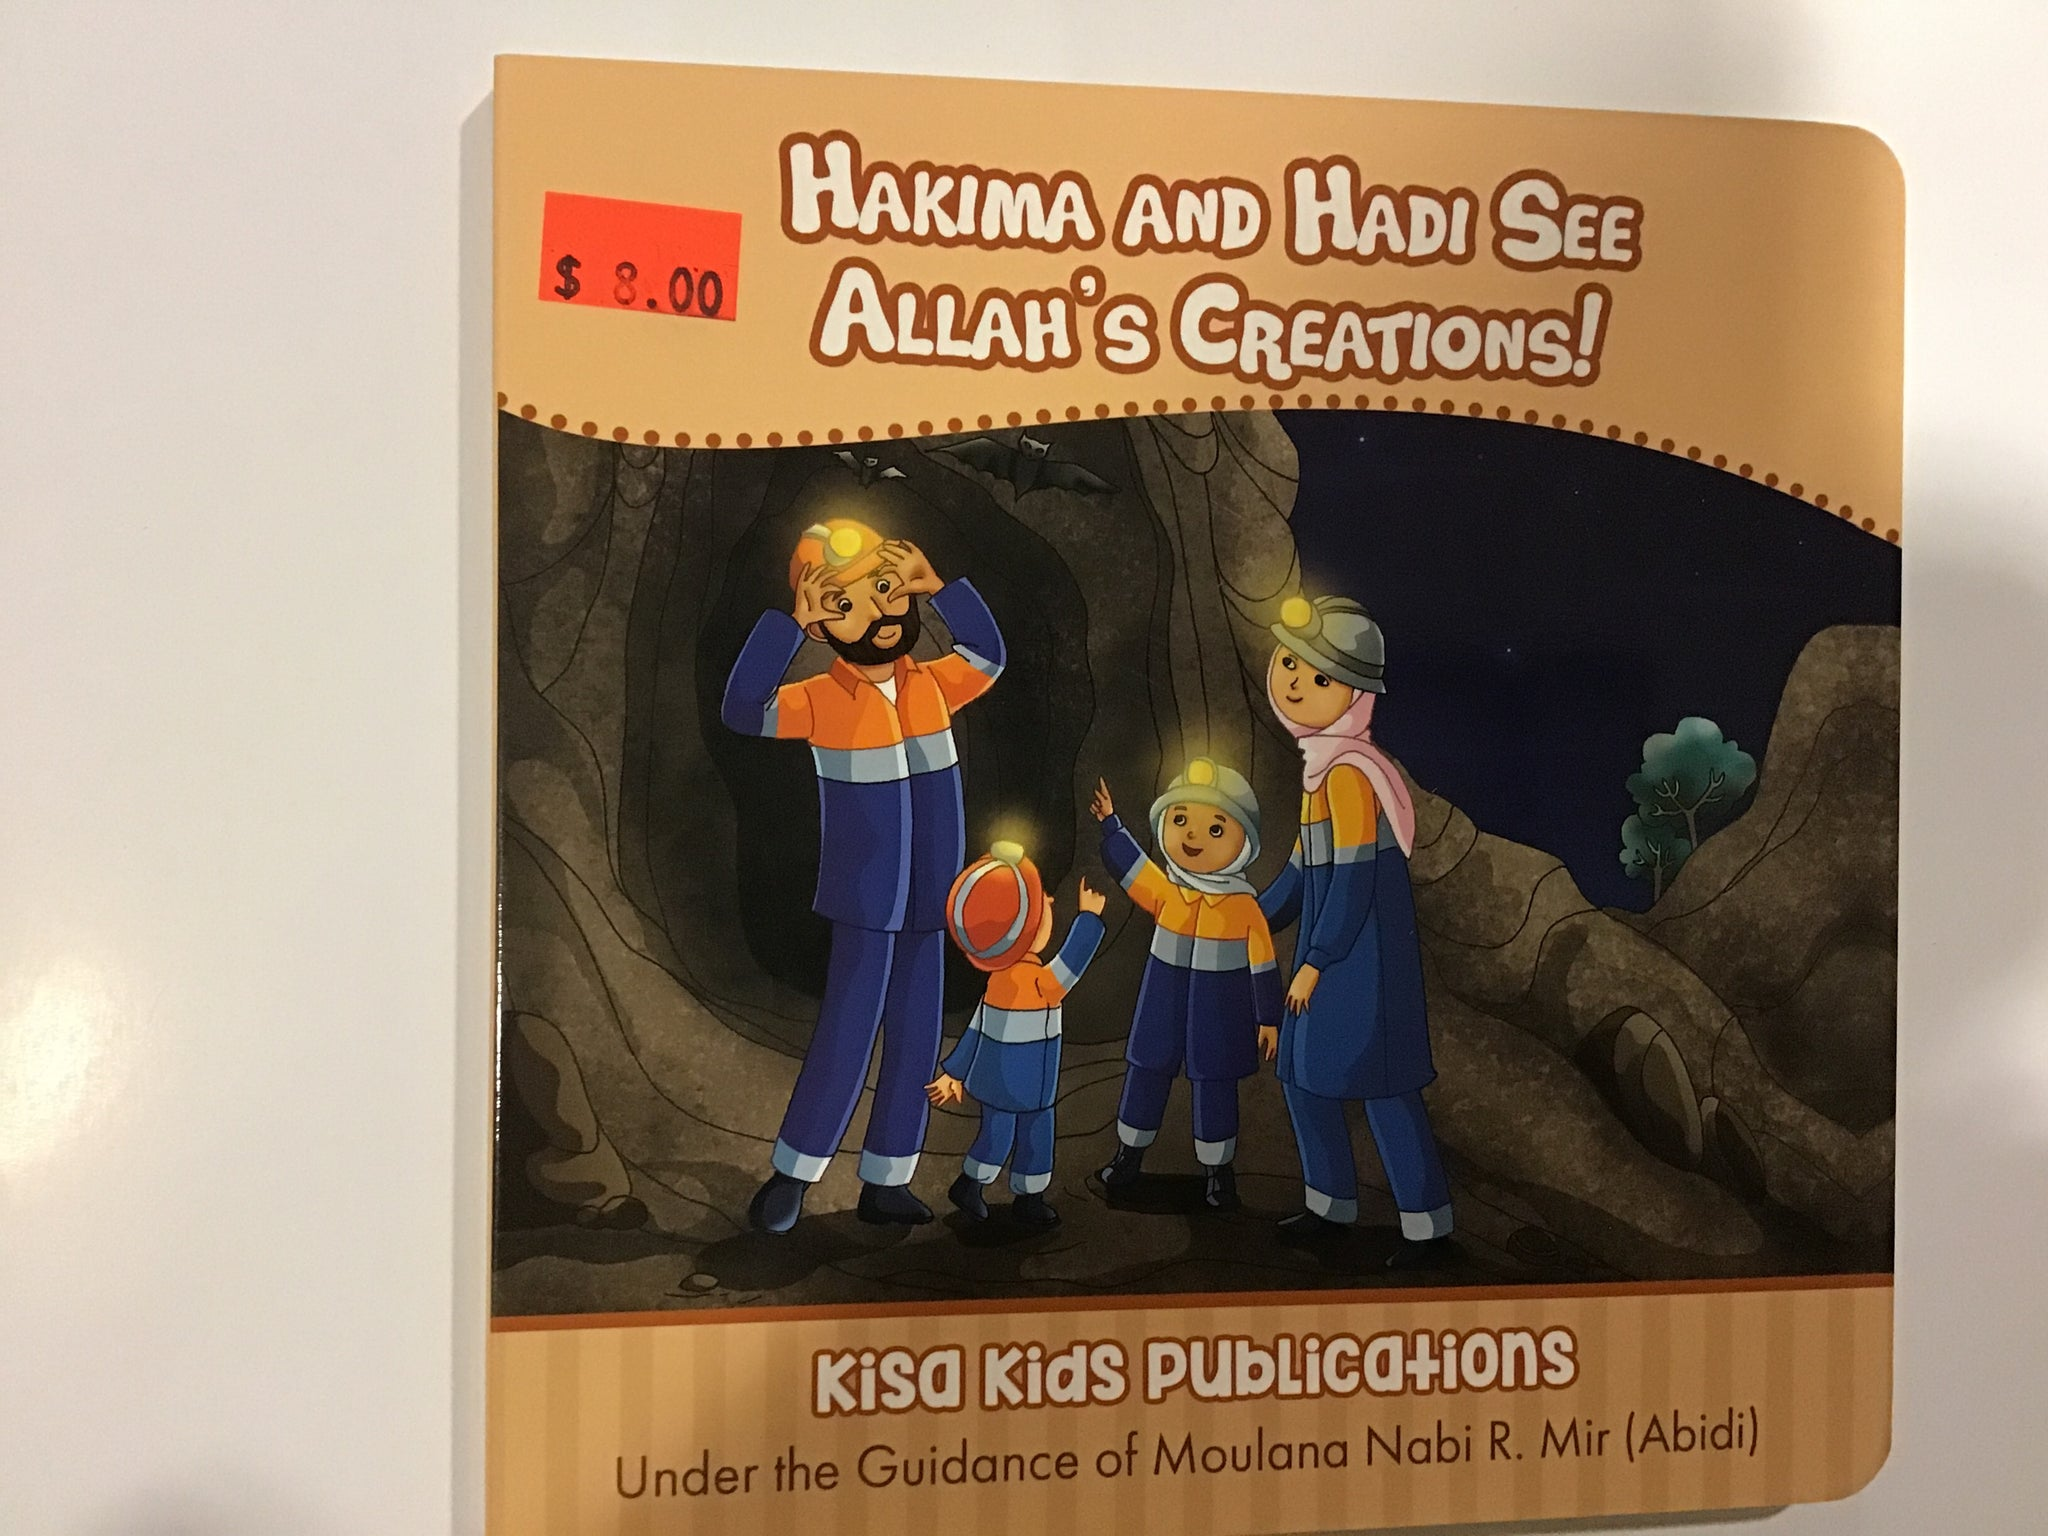 Hakima and Hadi See Allah's Creations